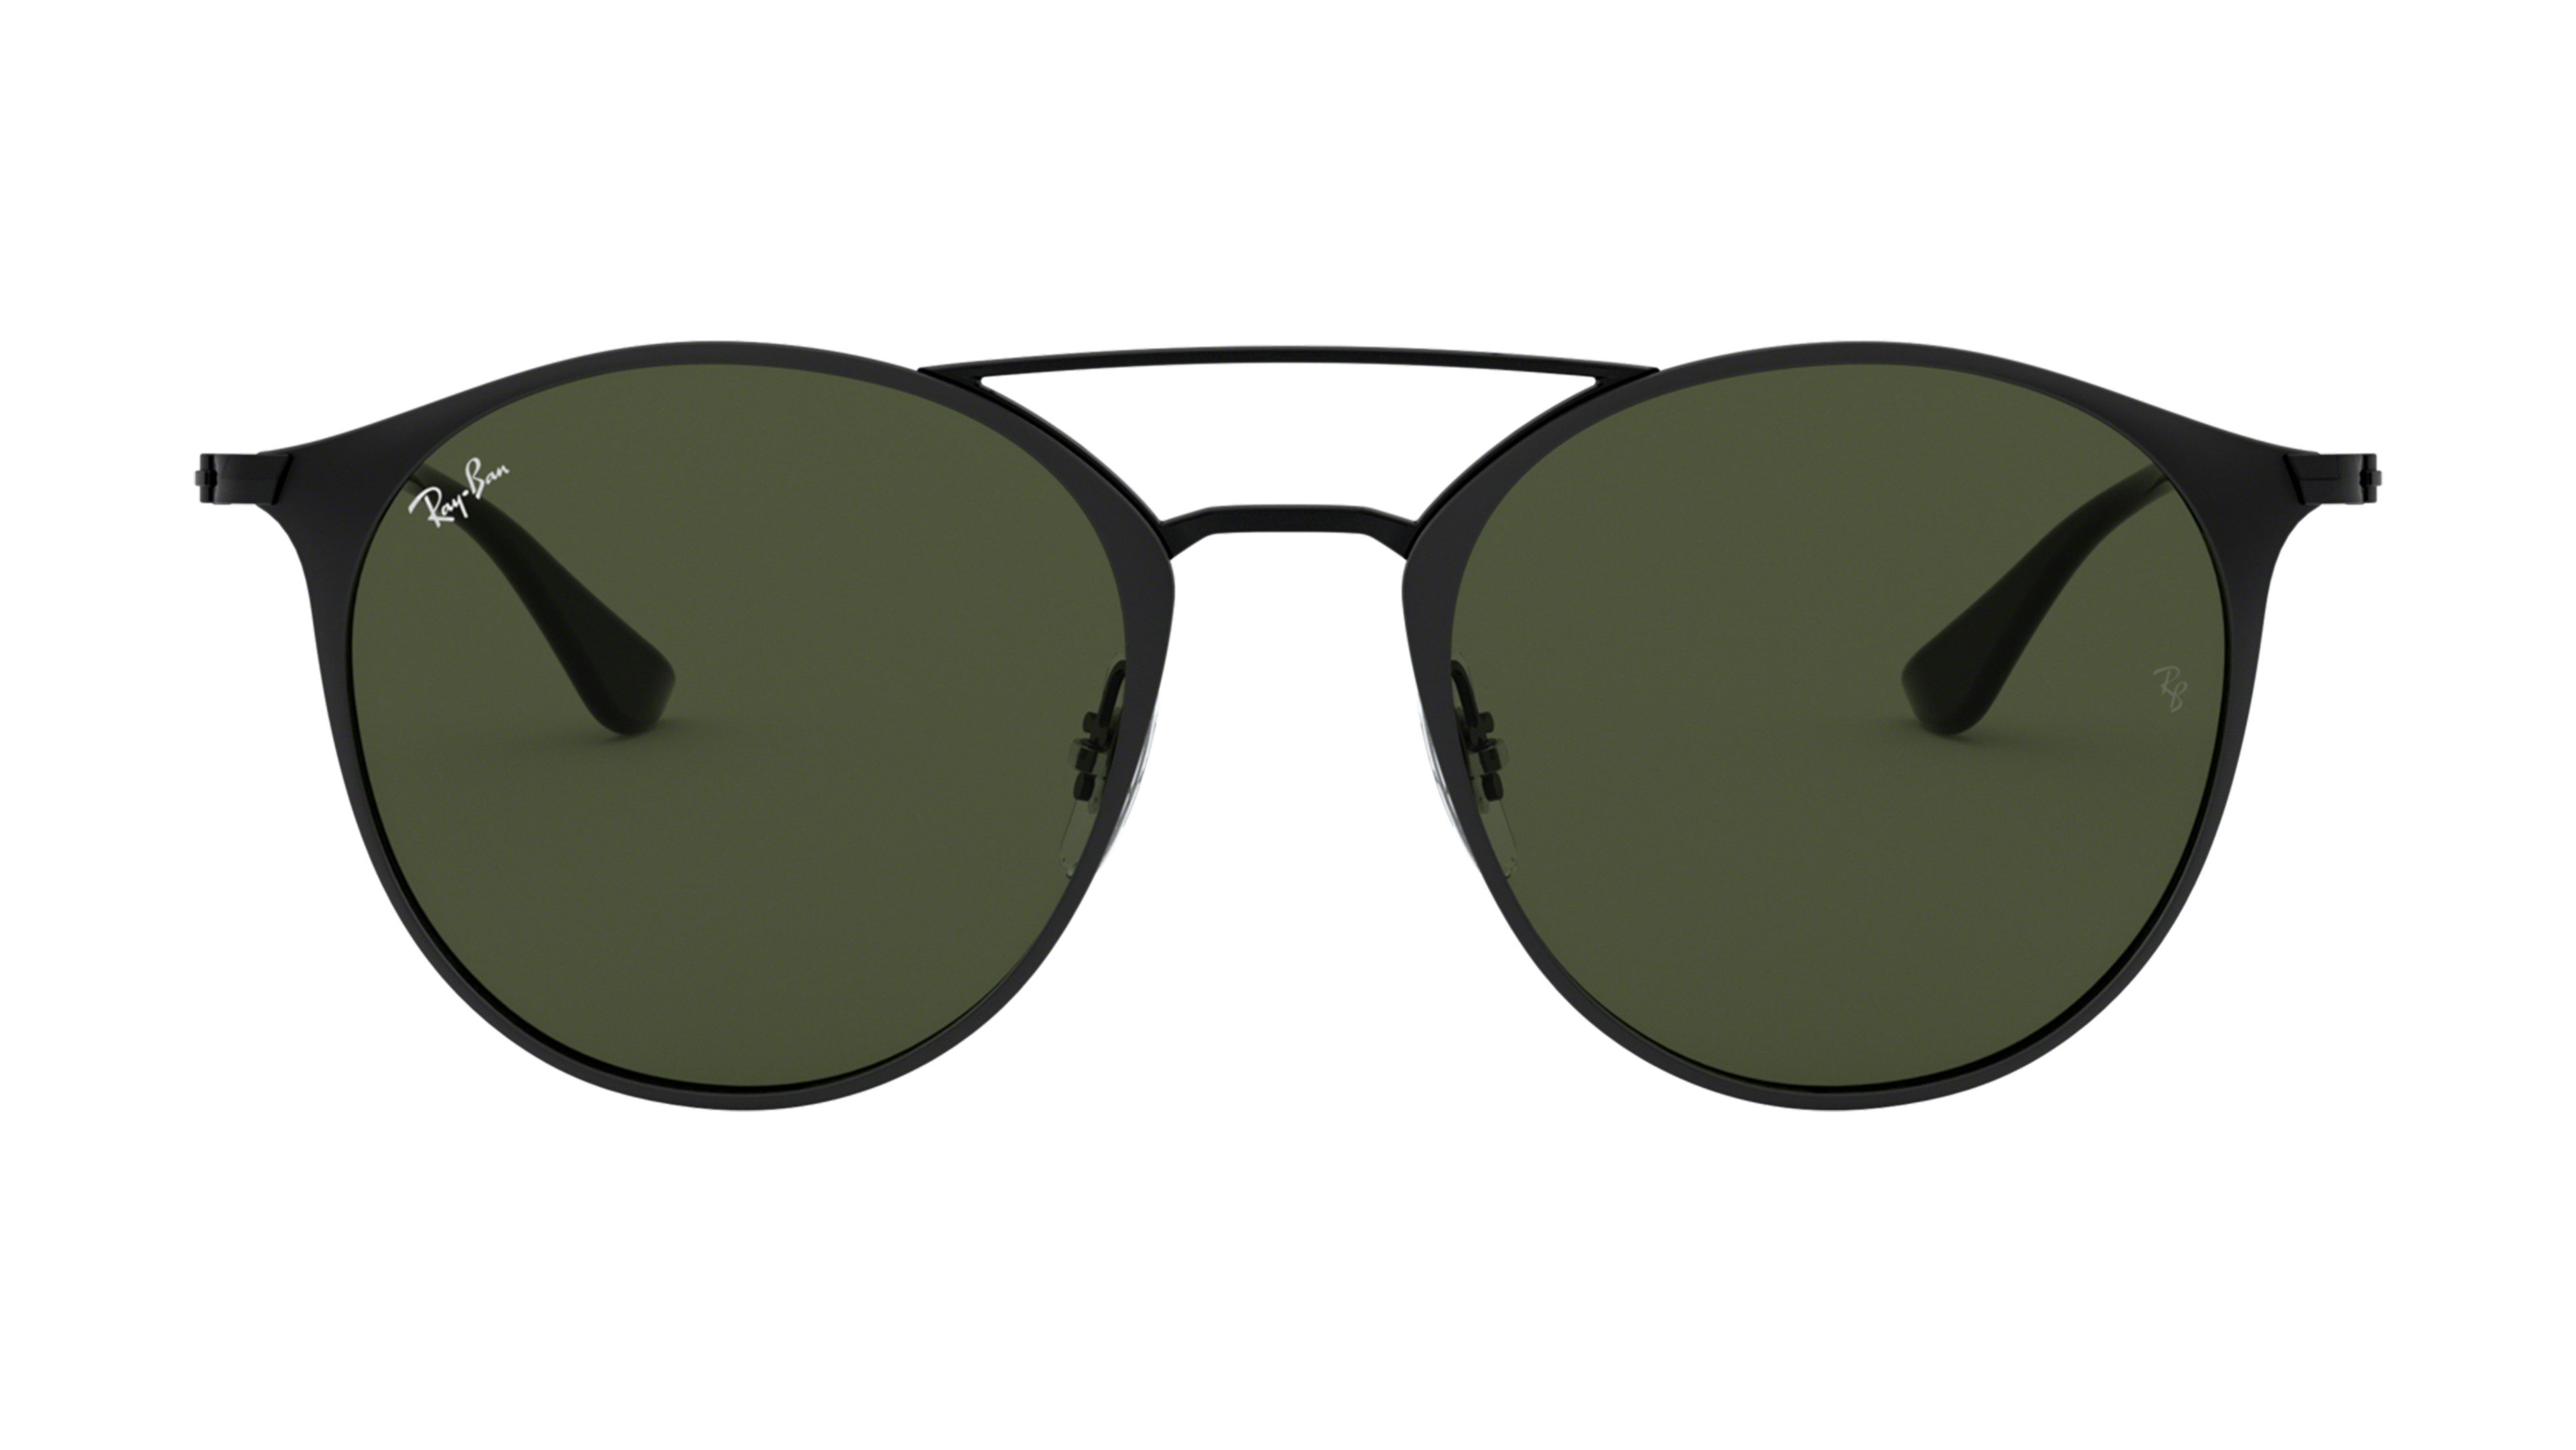 8053672672329-front-Ray-Ban-0RB3546-186